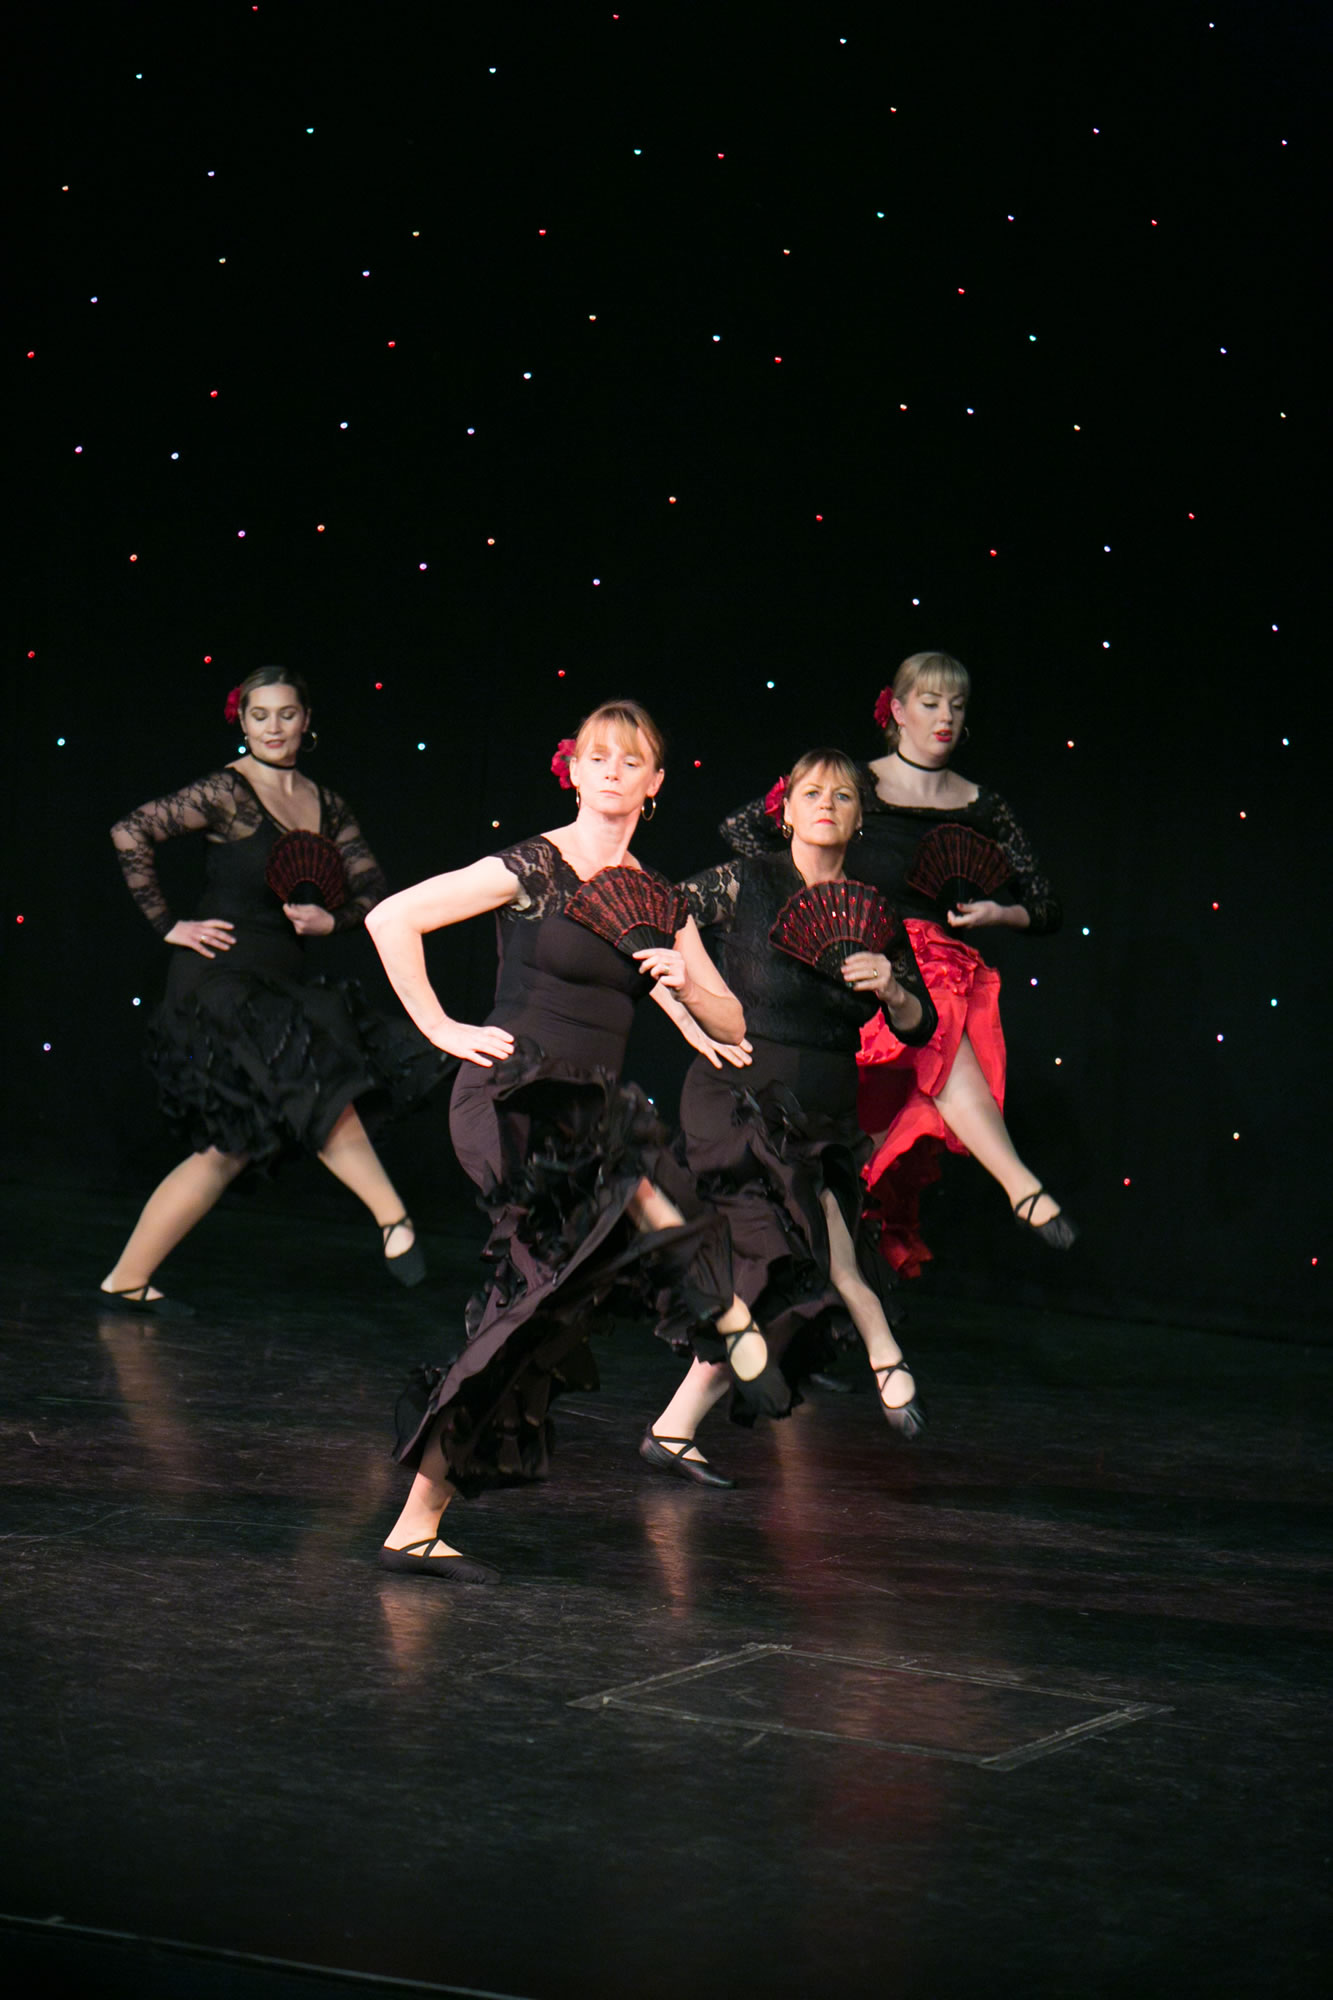 Hitchin_School_of_Dance_Show_2019-SM1_1998.jpg